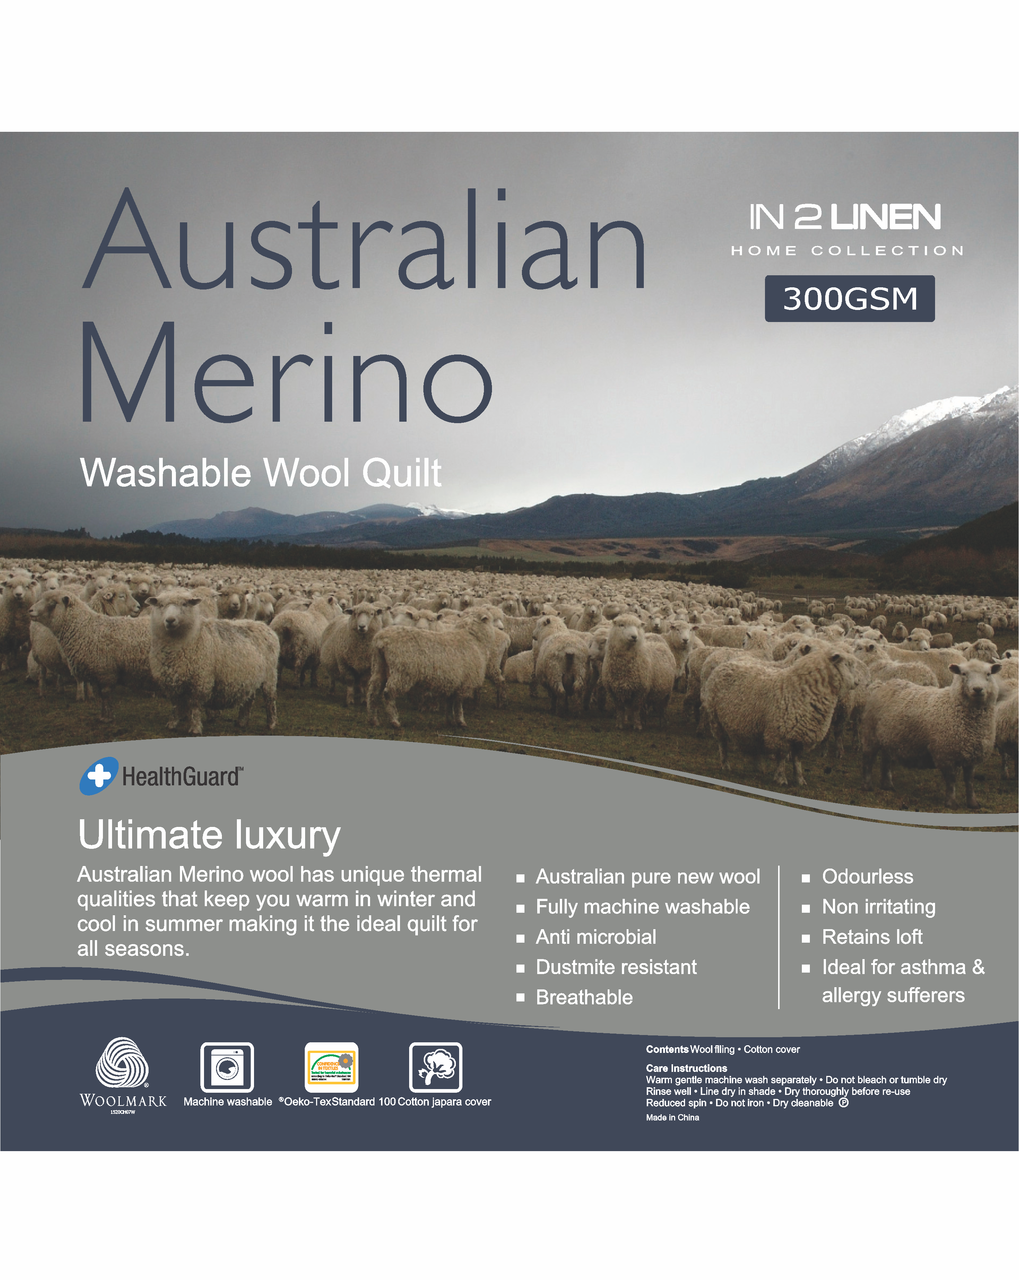 In 2 Linen Australian Merino Wool Single Bed Quilt 300GSM | All seasons